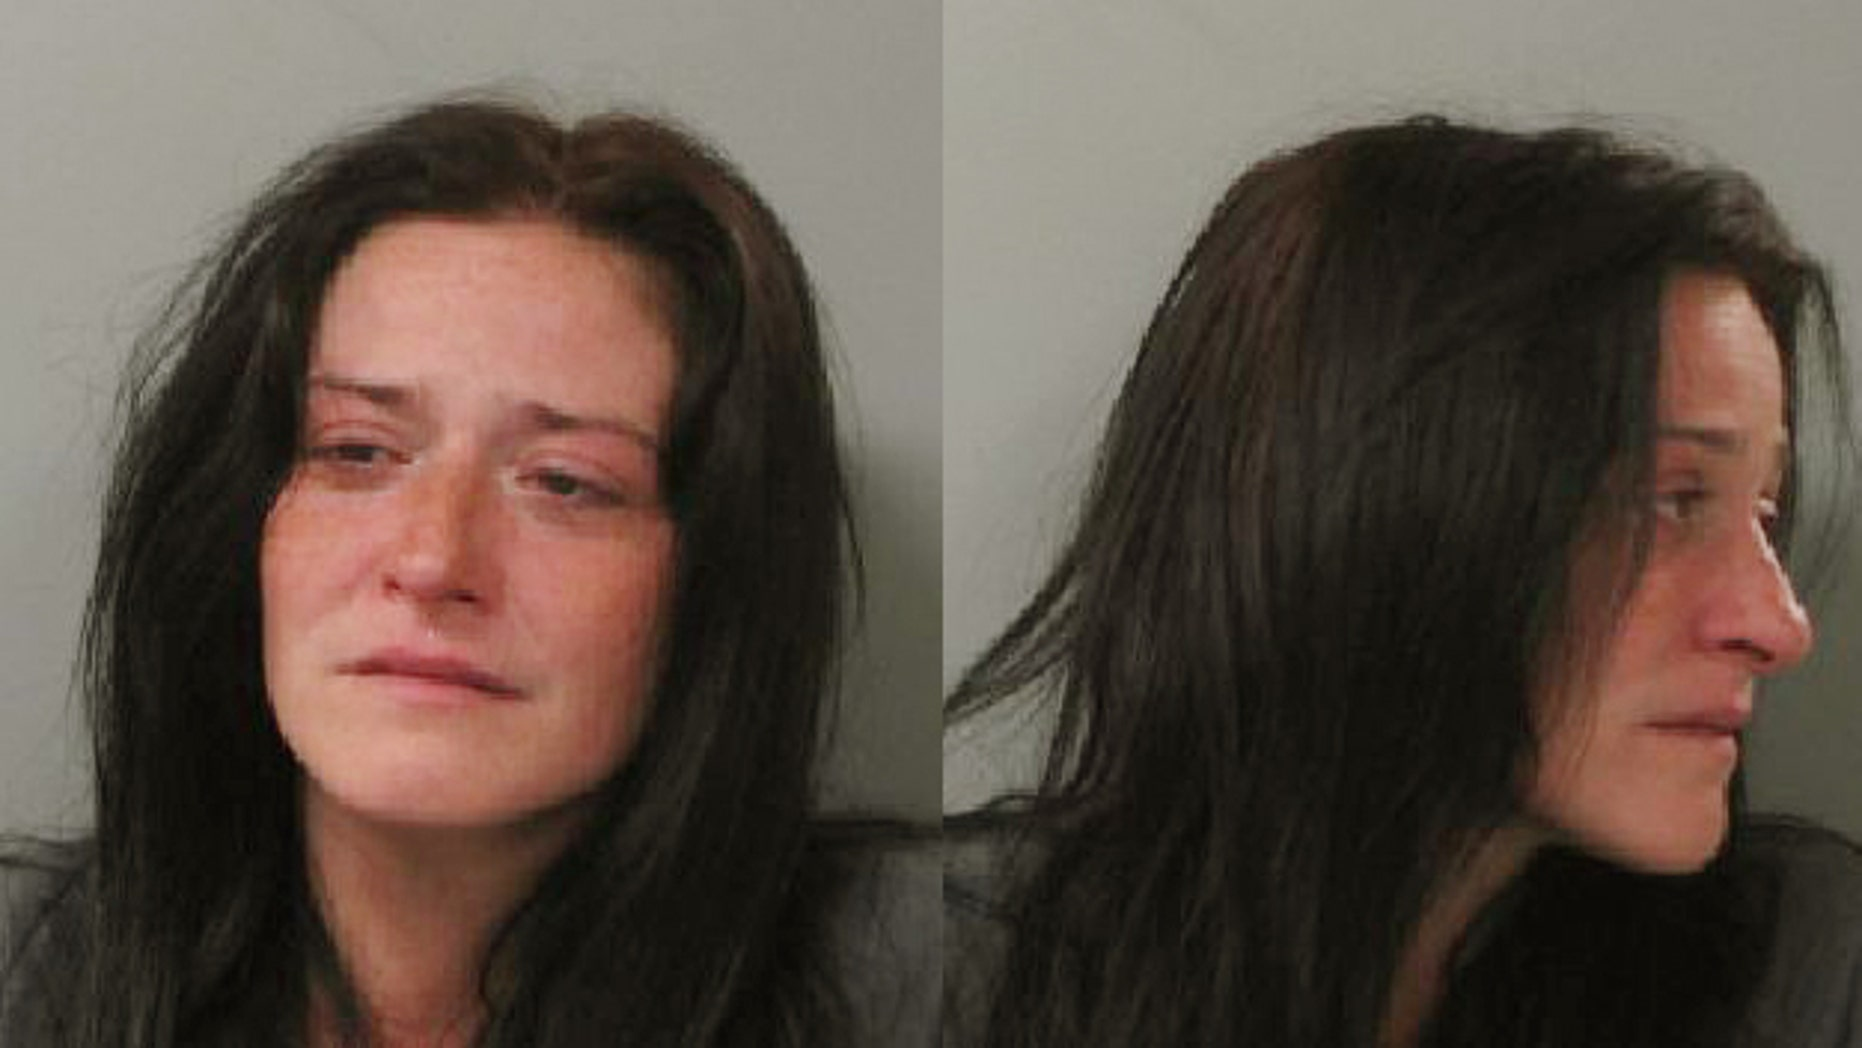 This Saturday, Aug. 29, 2015 photo provided by the Batavia, N.Y. Police Department shows Christina M. Colantonio. Colantonio was arrested on Saturday, Aug. 29, 2015 on a murder charge after police say she killed her infant child and then lived in an apartment with the baby's lifeless body for three months. (Batavia Police Department via the AP)